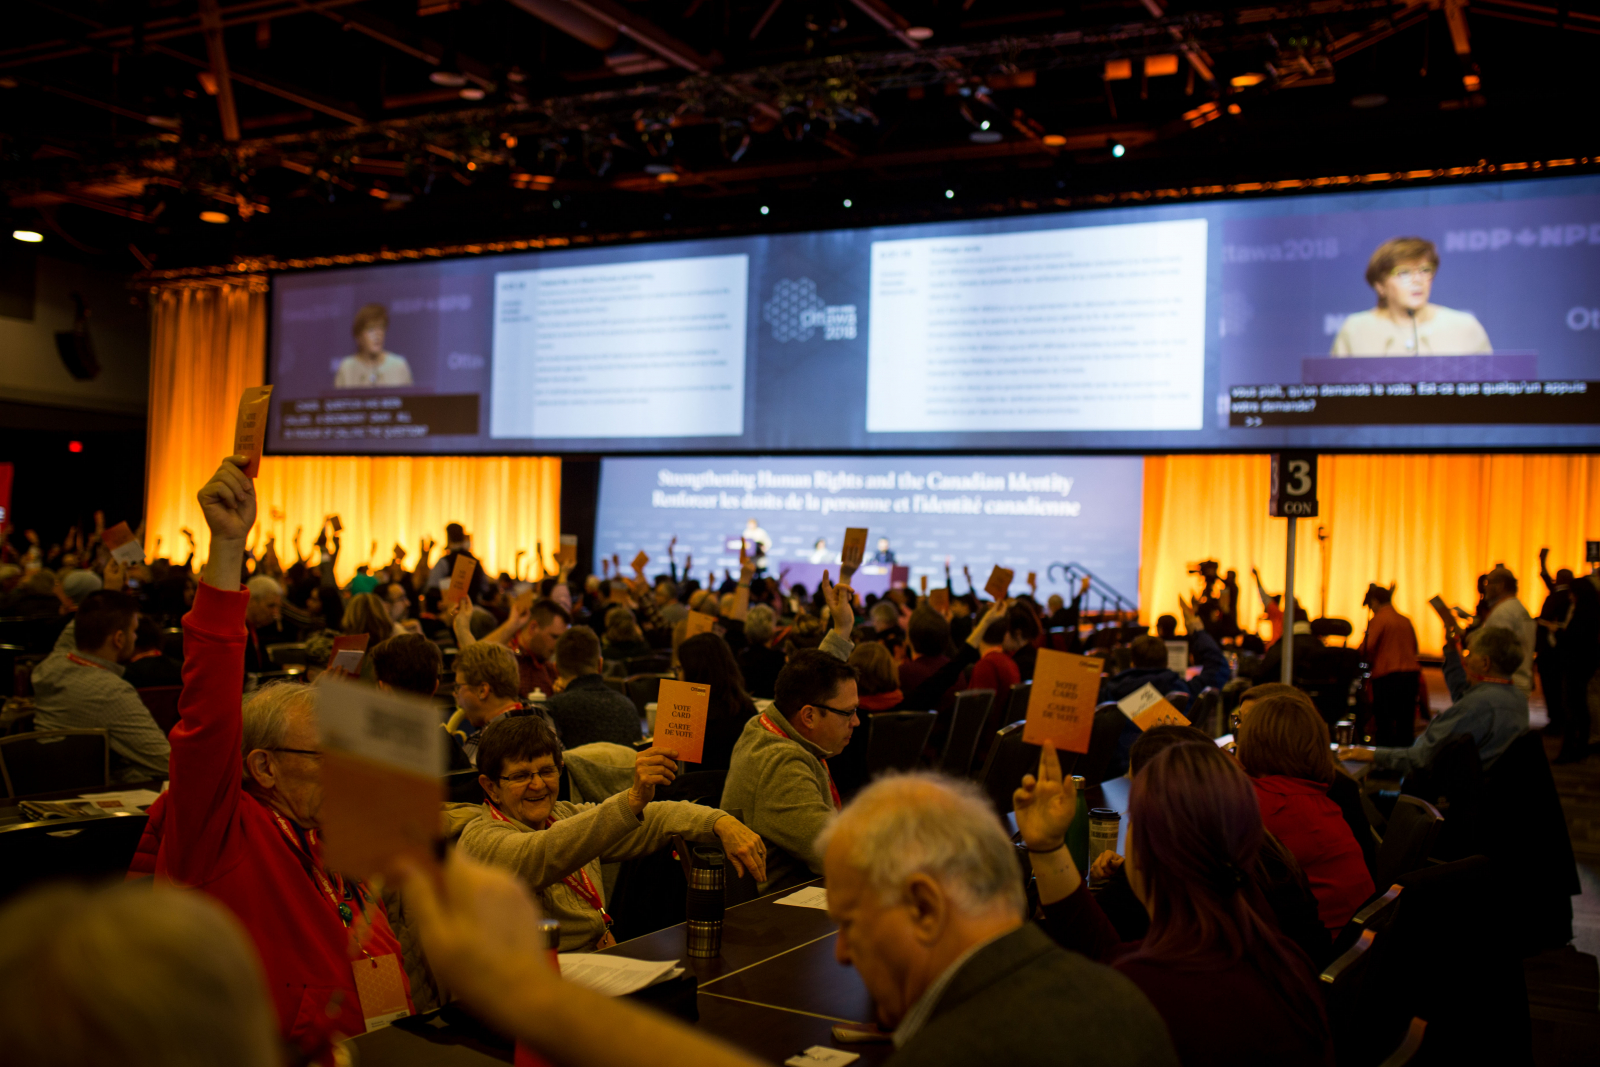 NDP delegates vote during their national convention in Ottawa on Feb. 17, 2018. Photo by Alex Tétreault